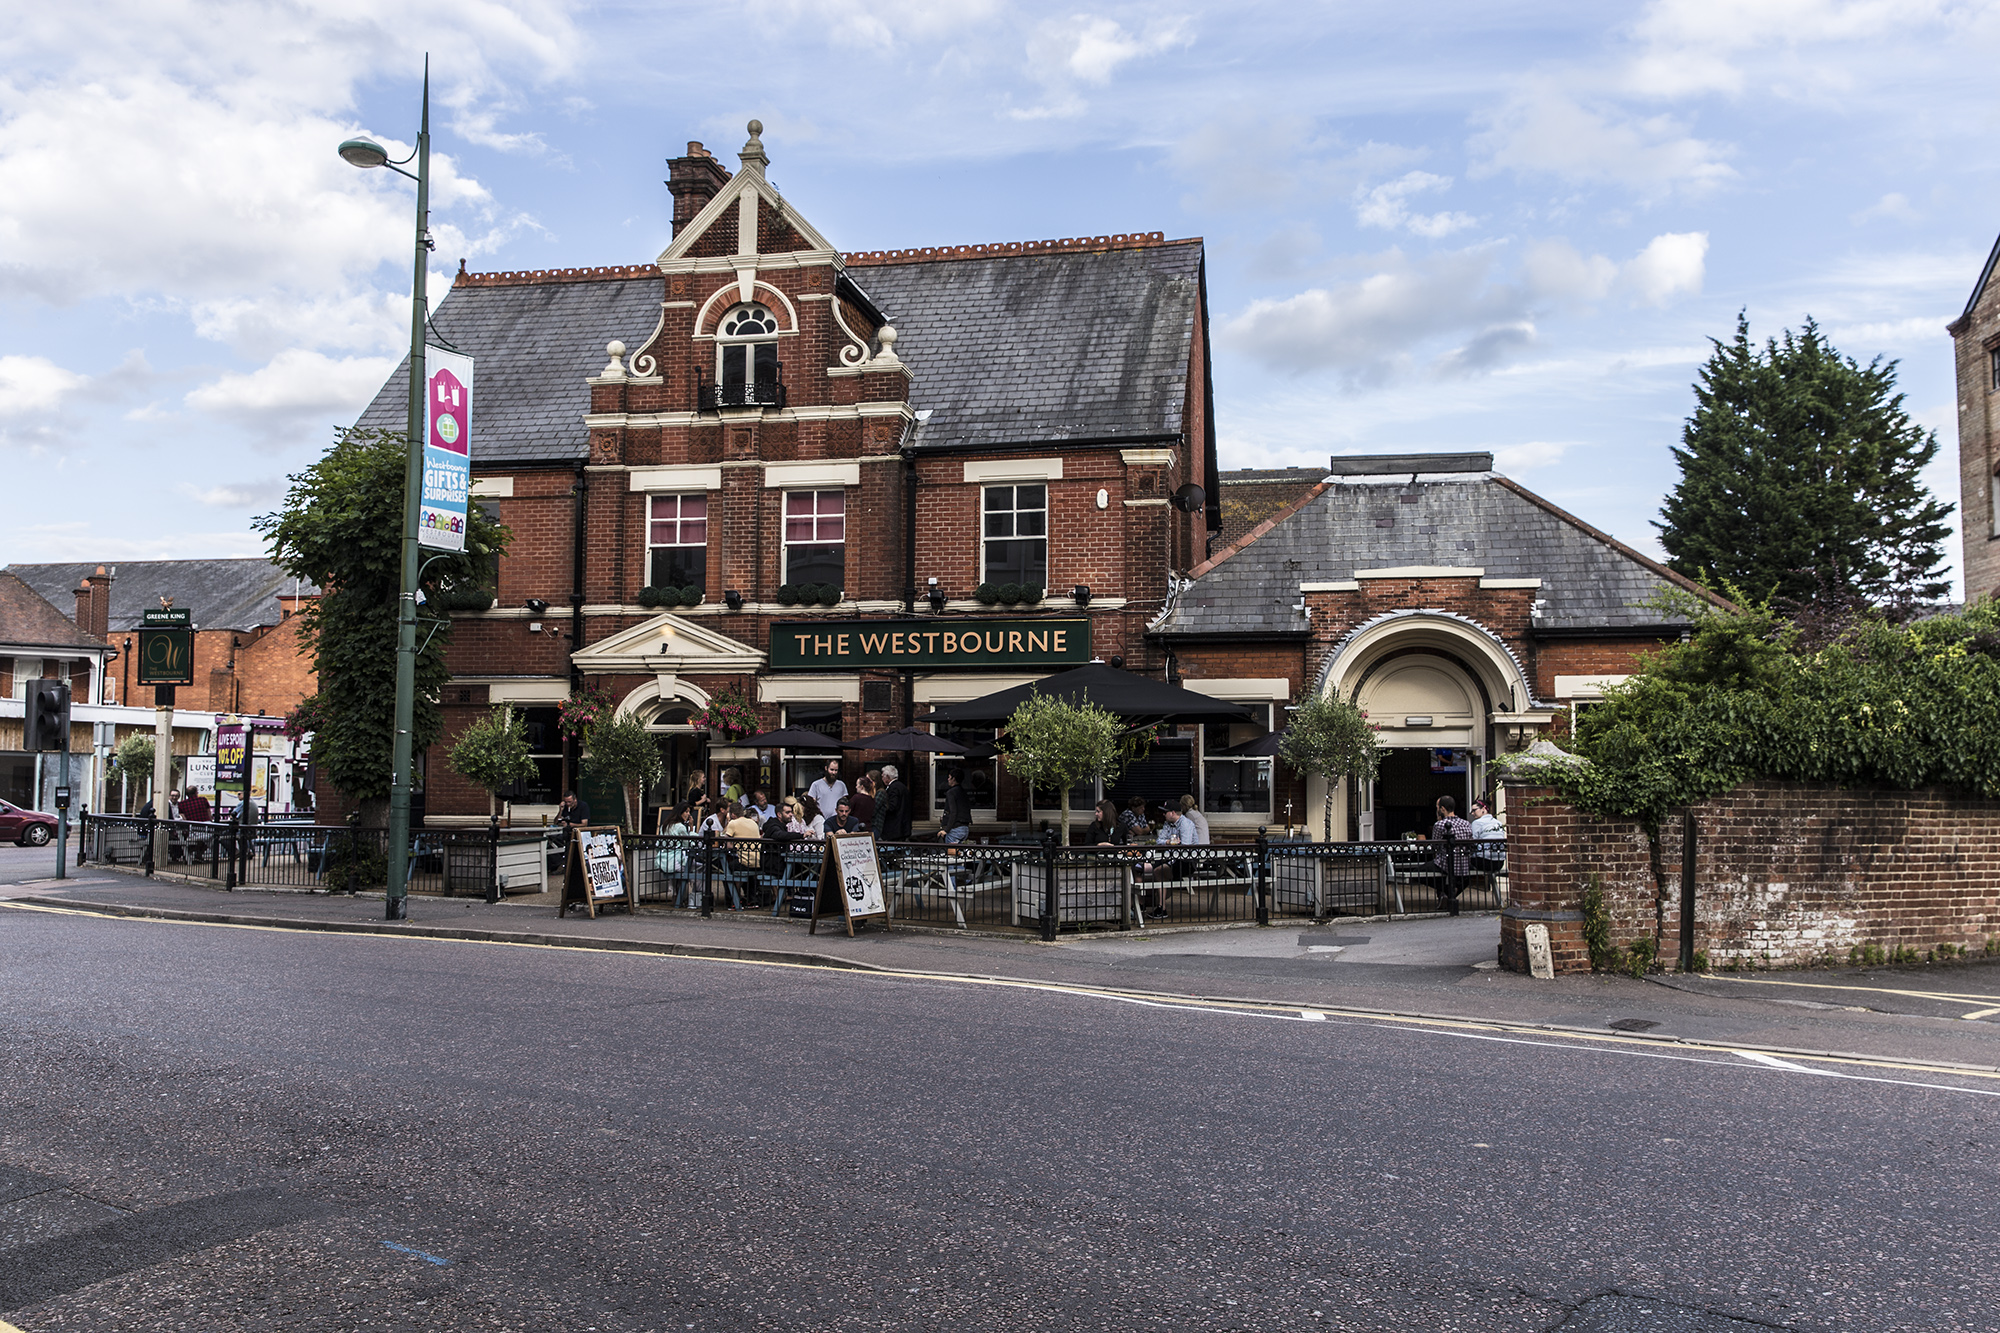 Westbourne Summer Festival 2016 - The Westbourne Pub